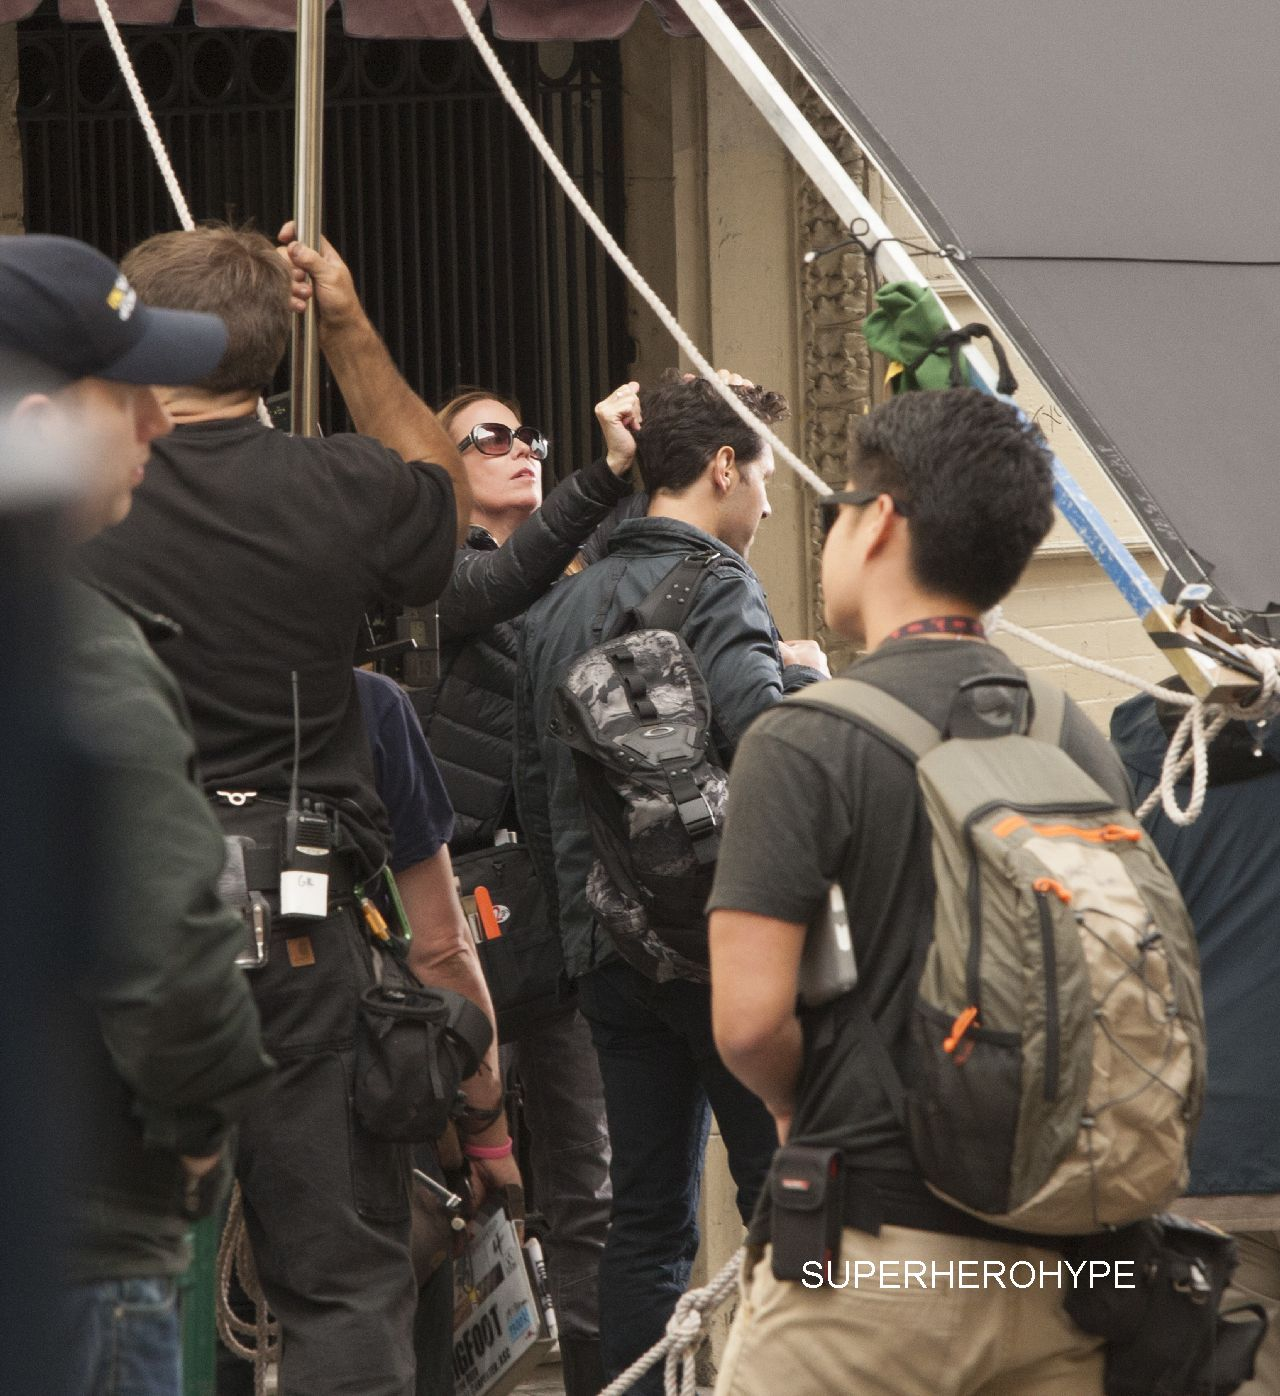 Marvel's 'Ant-Man' filming in San Francisco